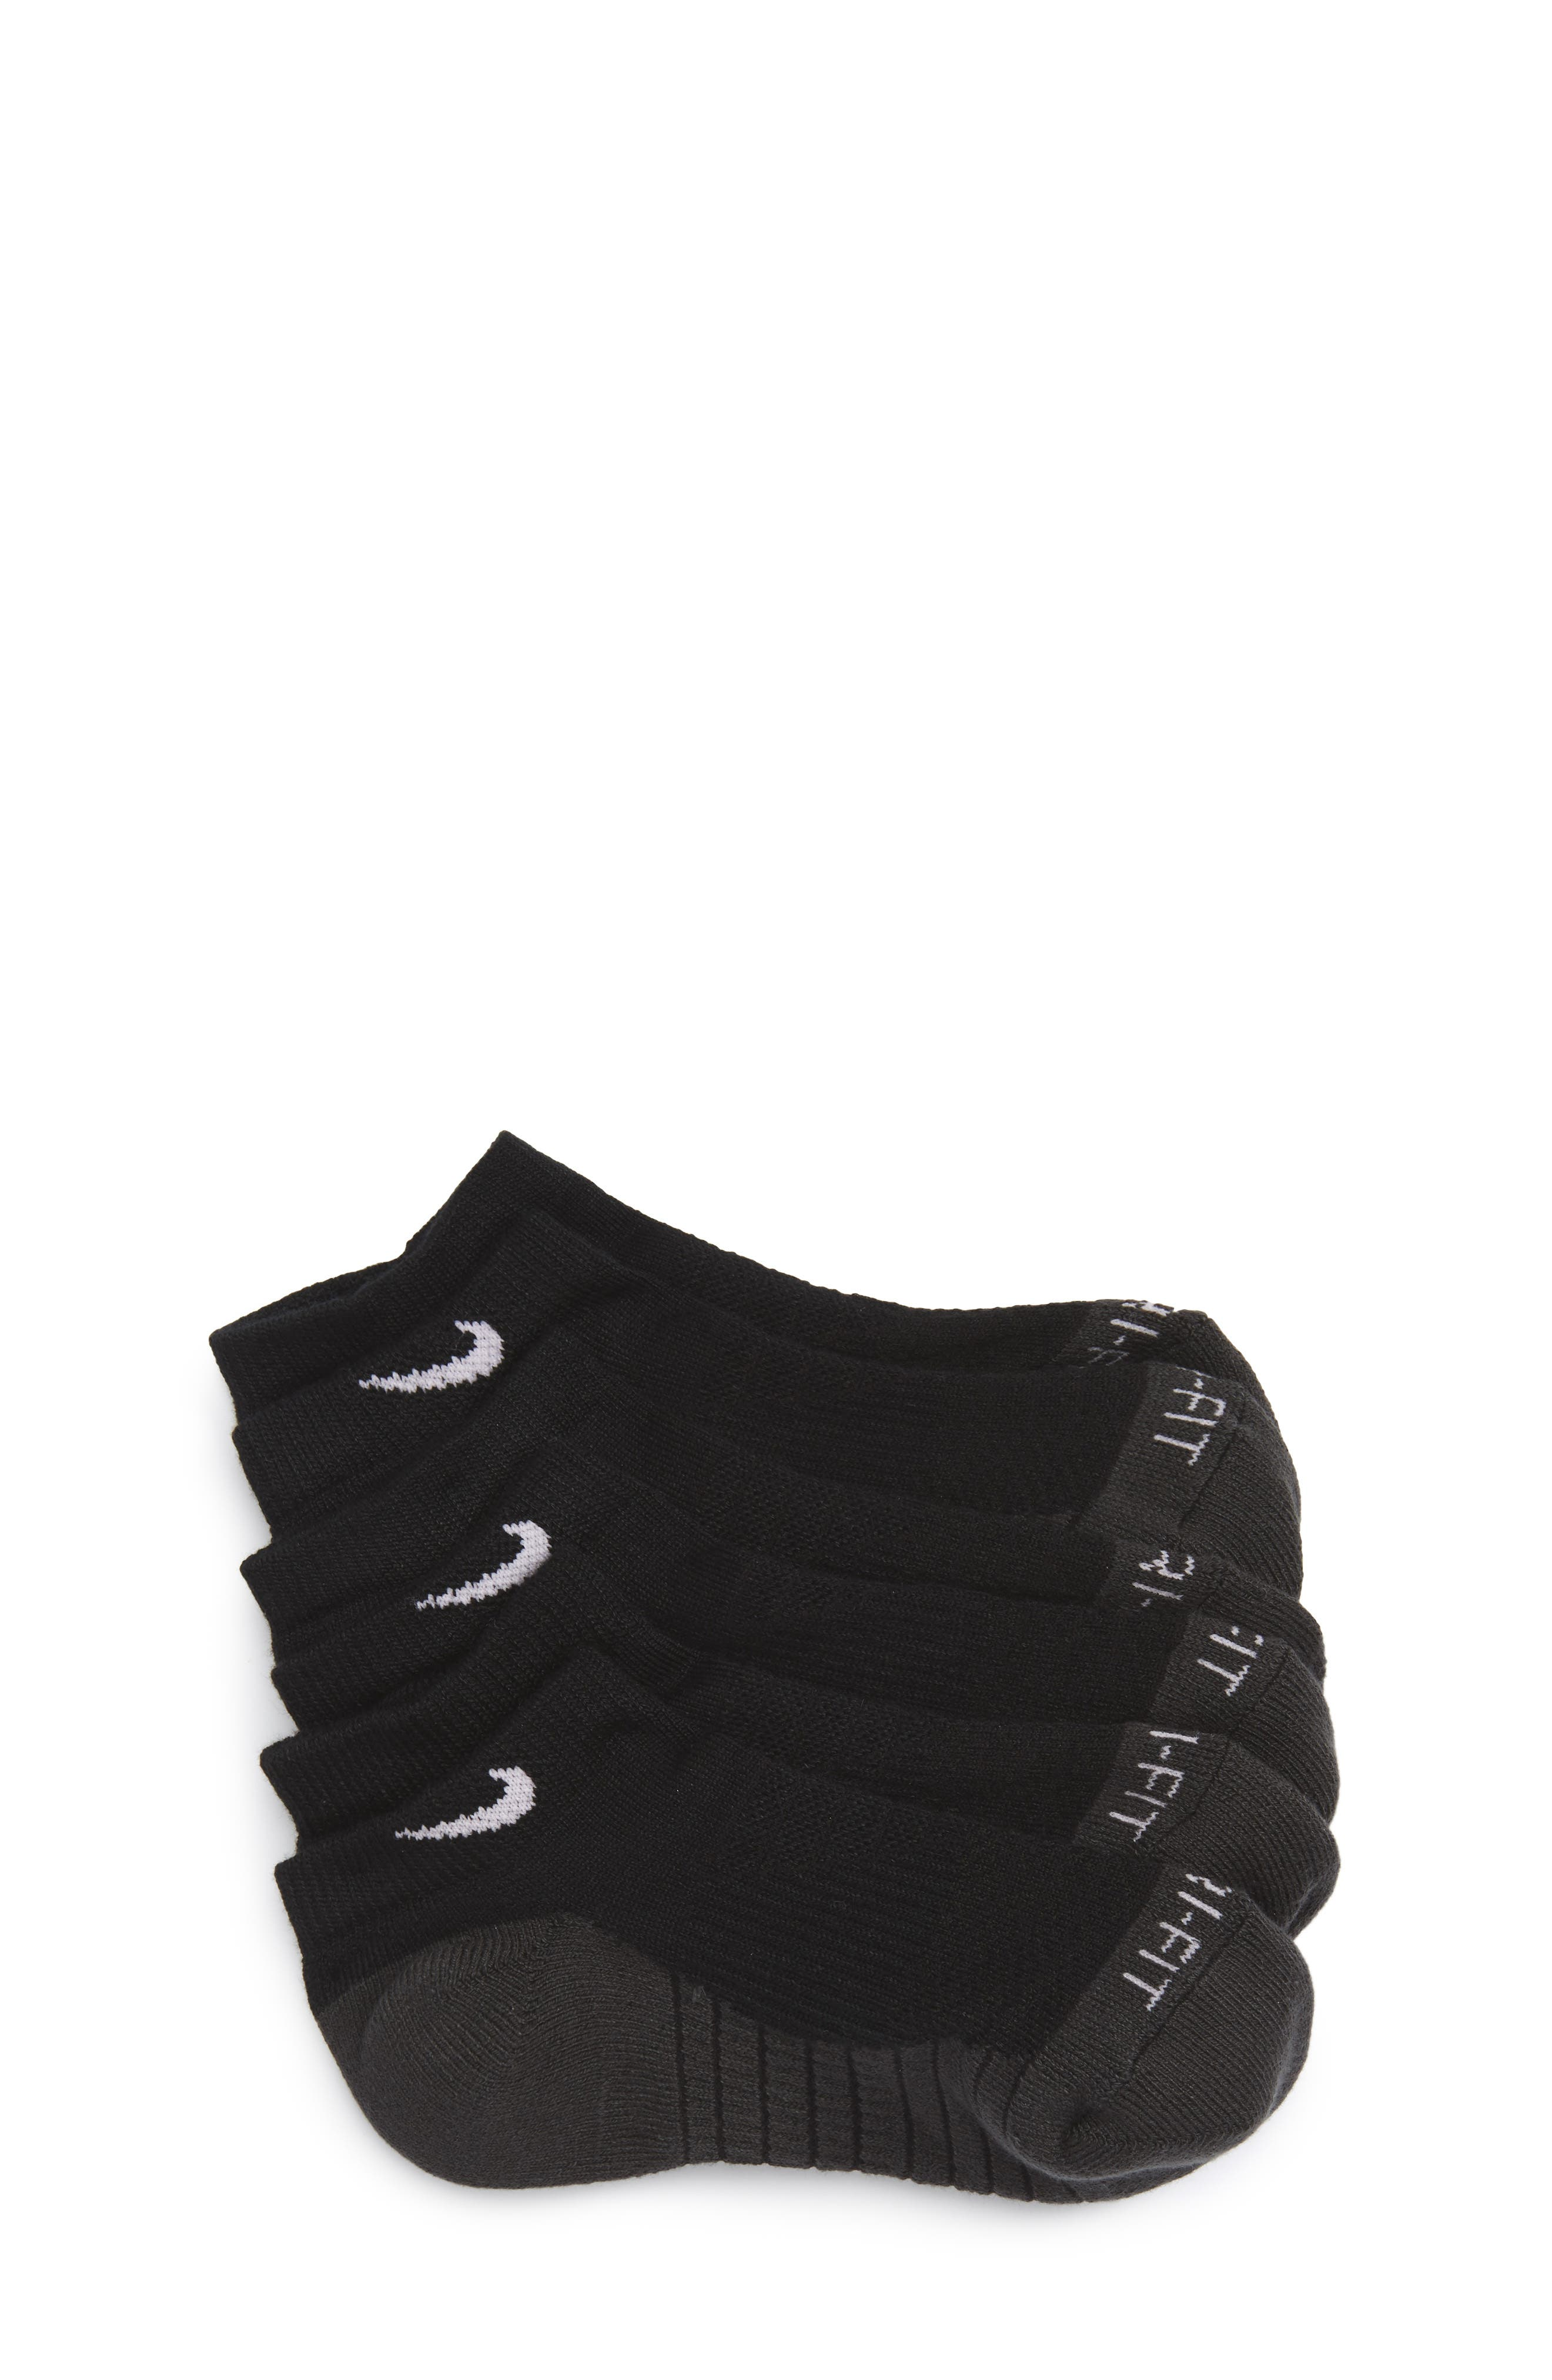 3-Pack Cushioned Dri-FIT No-Show Socks,                             Main thumbnail 1, color,                             BLACK/ ANTHRACITE/ WHITE